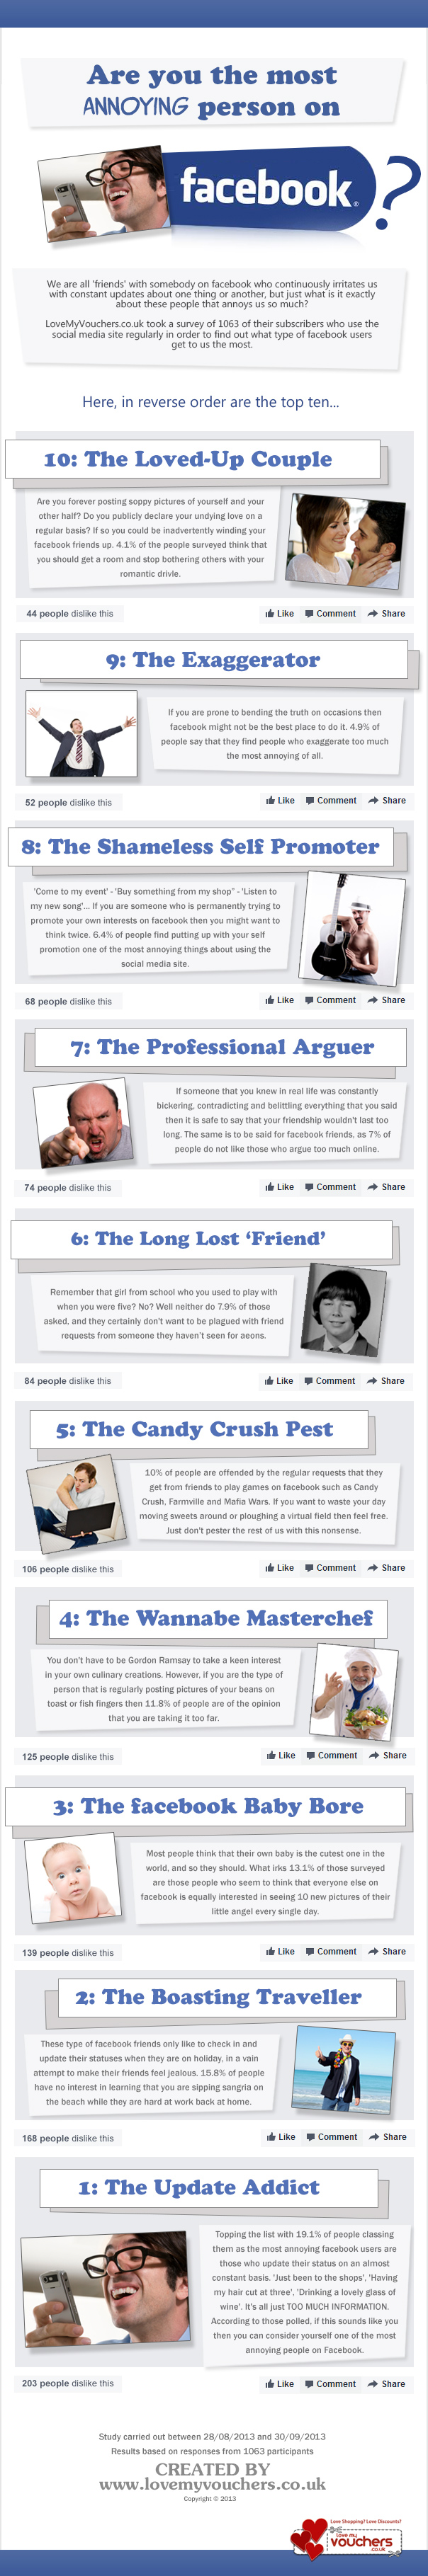 annoying-facebook-user-infographic